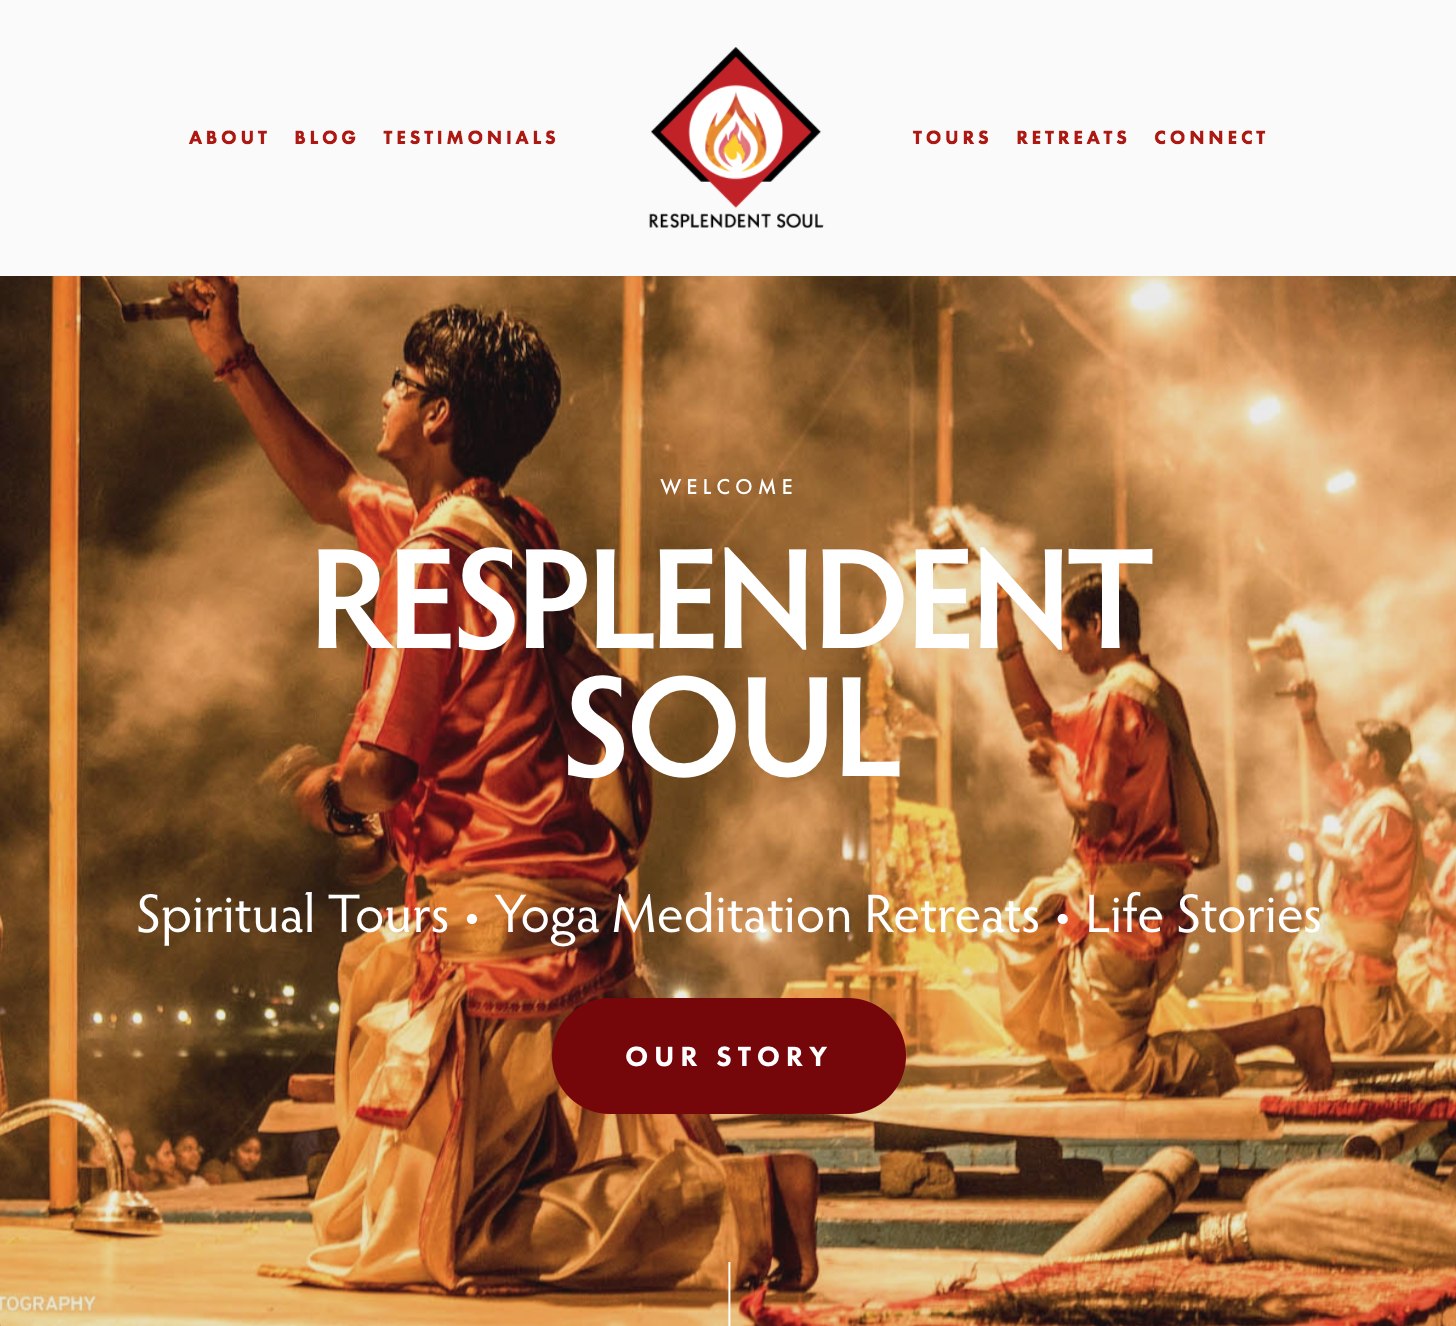 Website home page, check out  resplendentsoul.com  to see the full design.